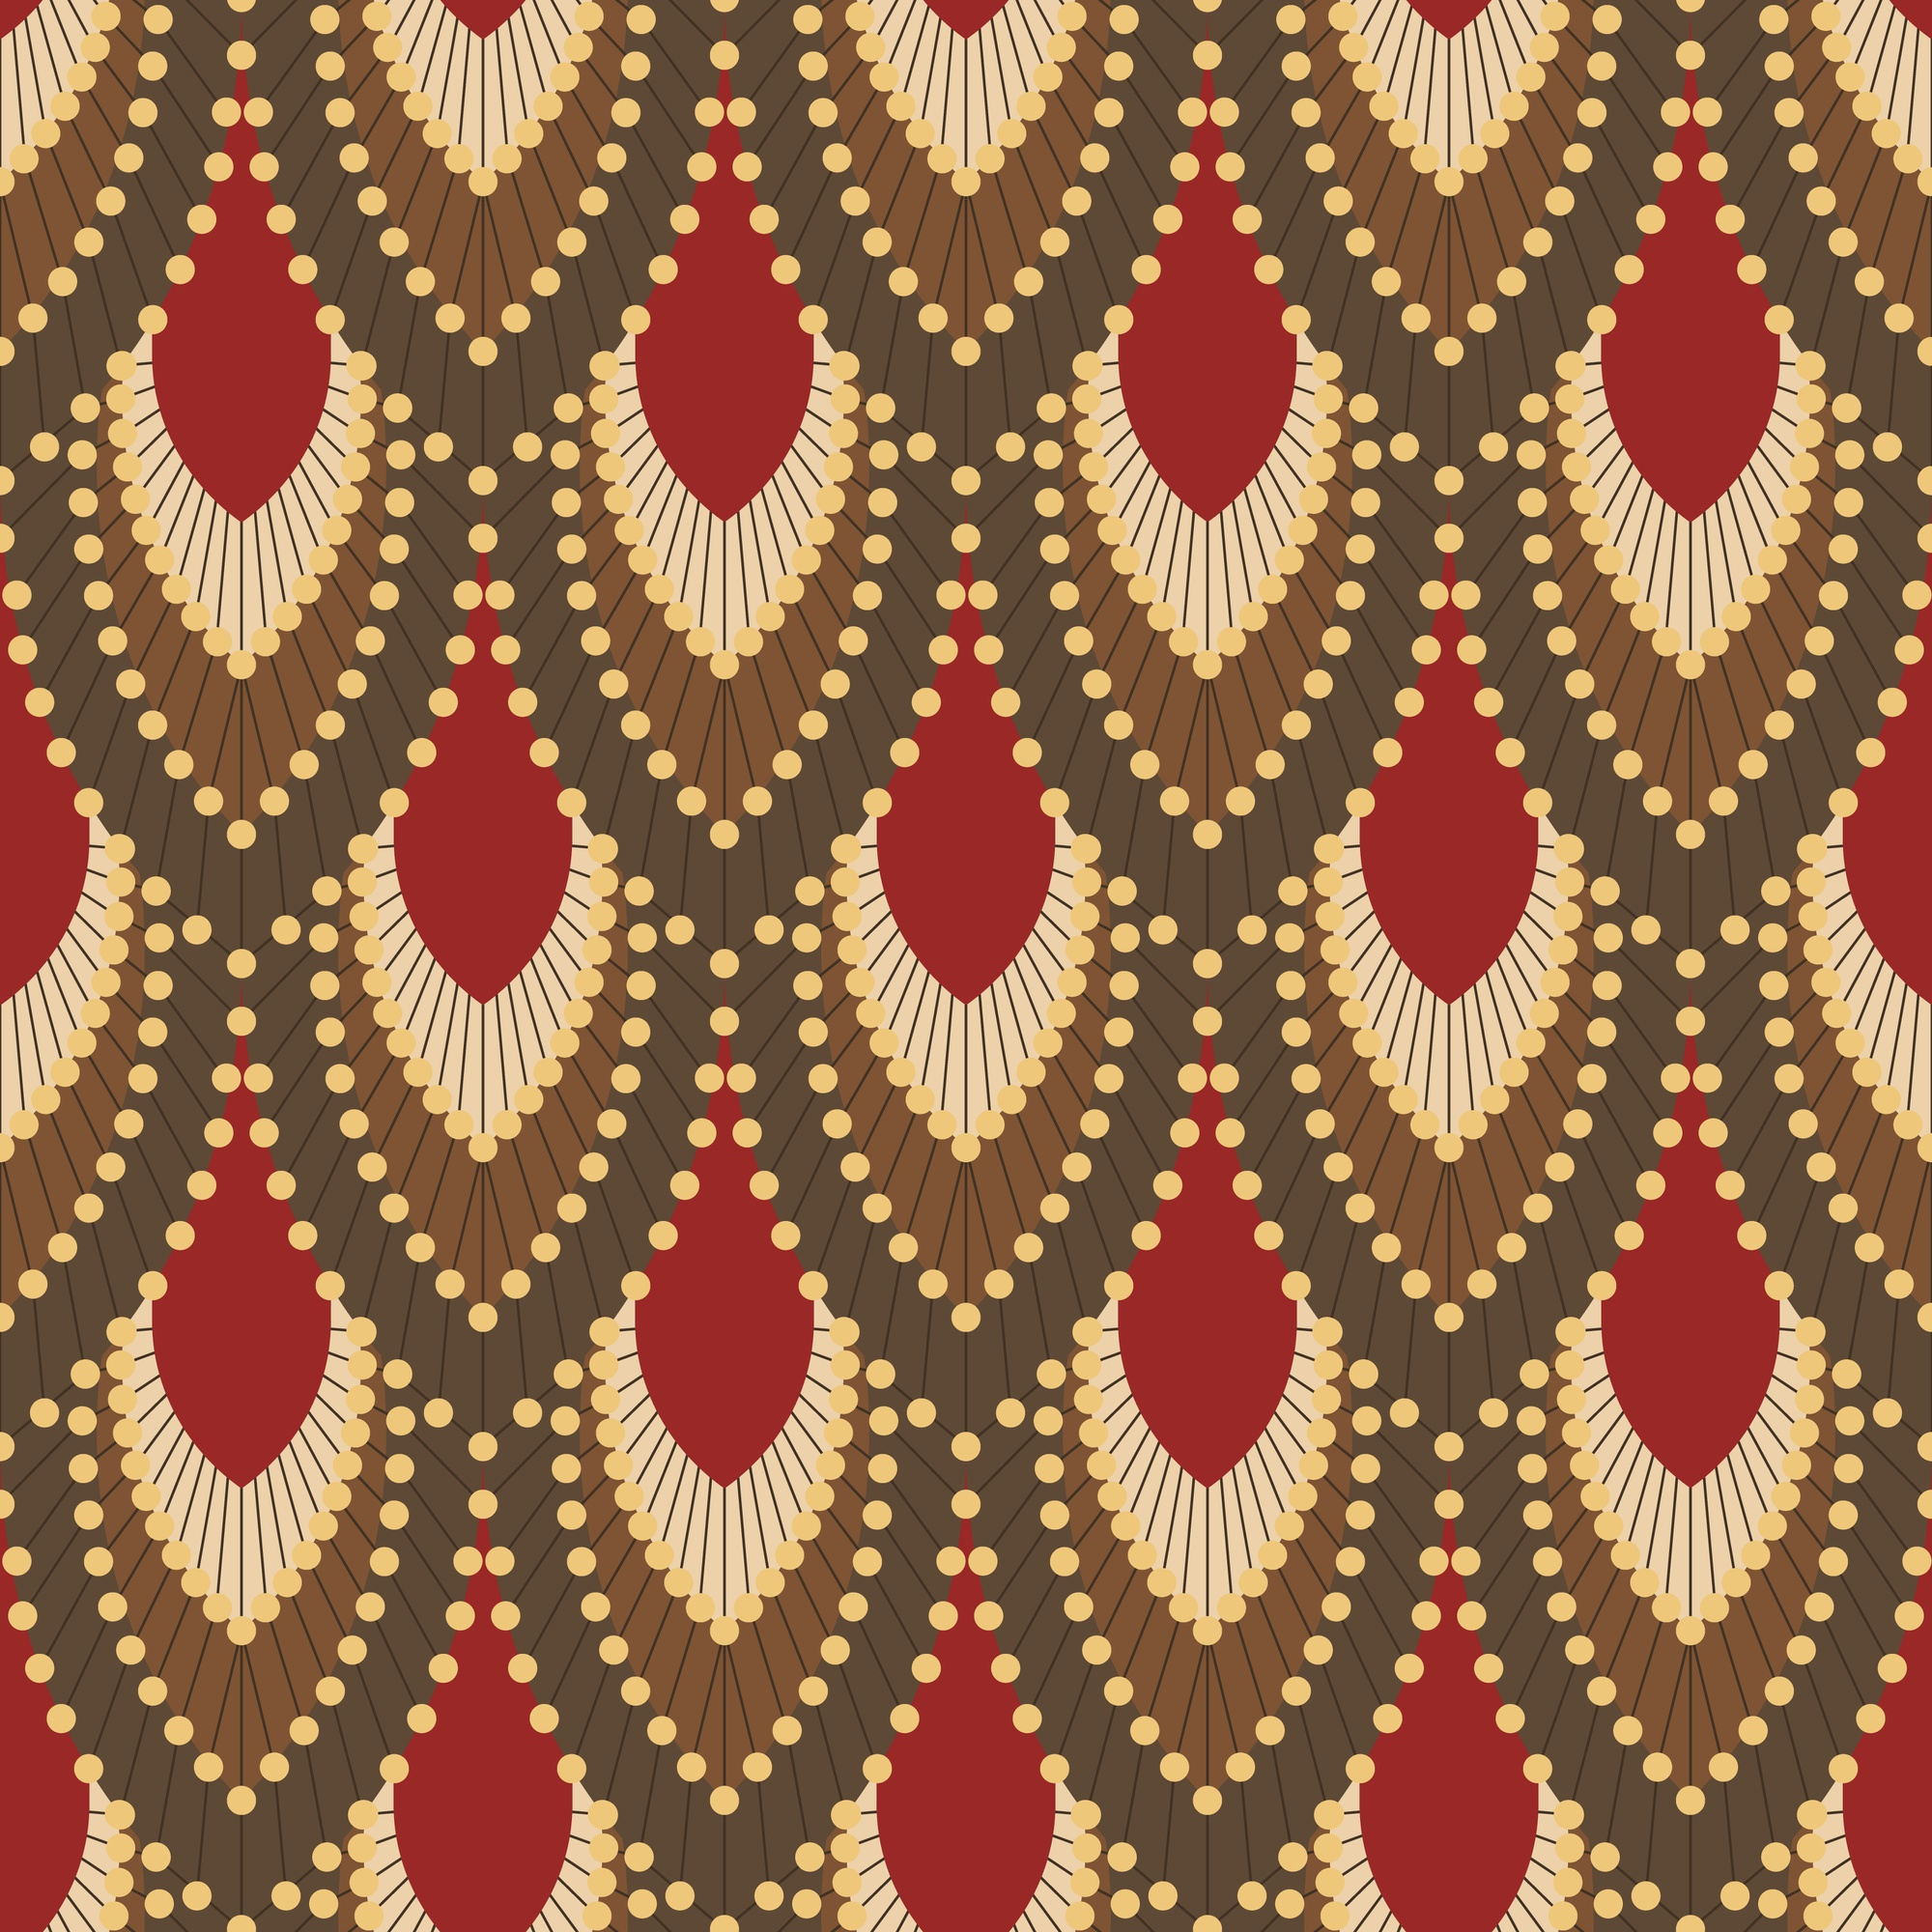 Background in Art Deco style with feathers 3